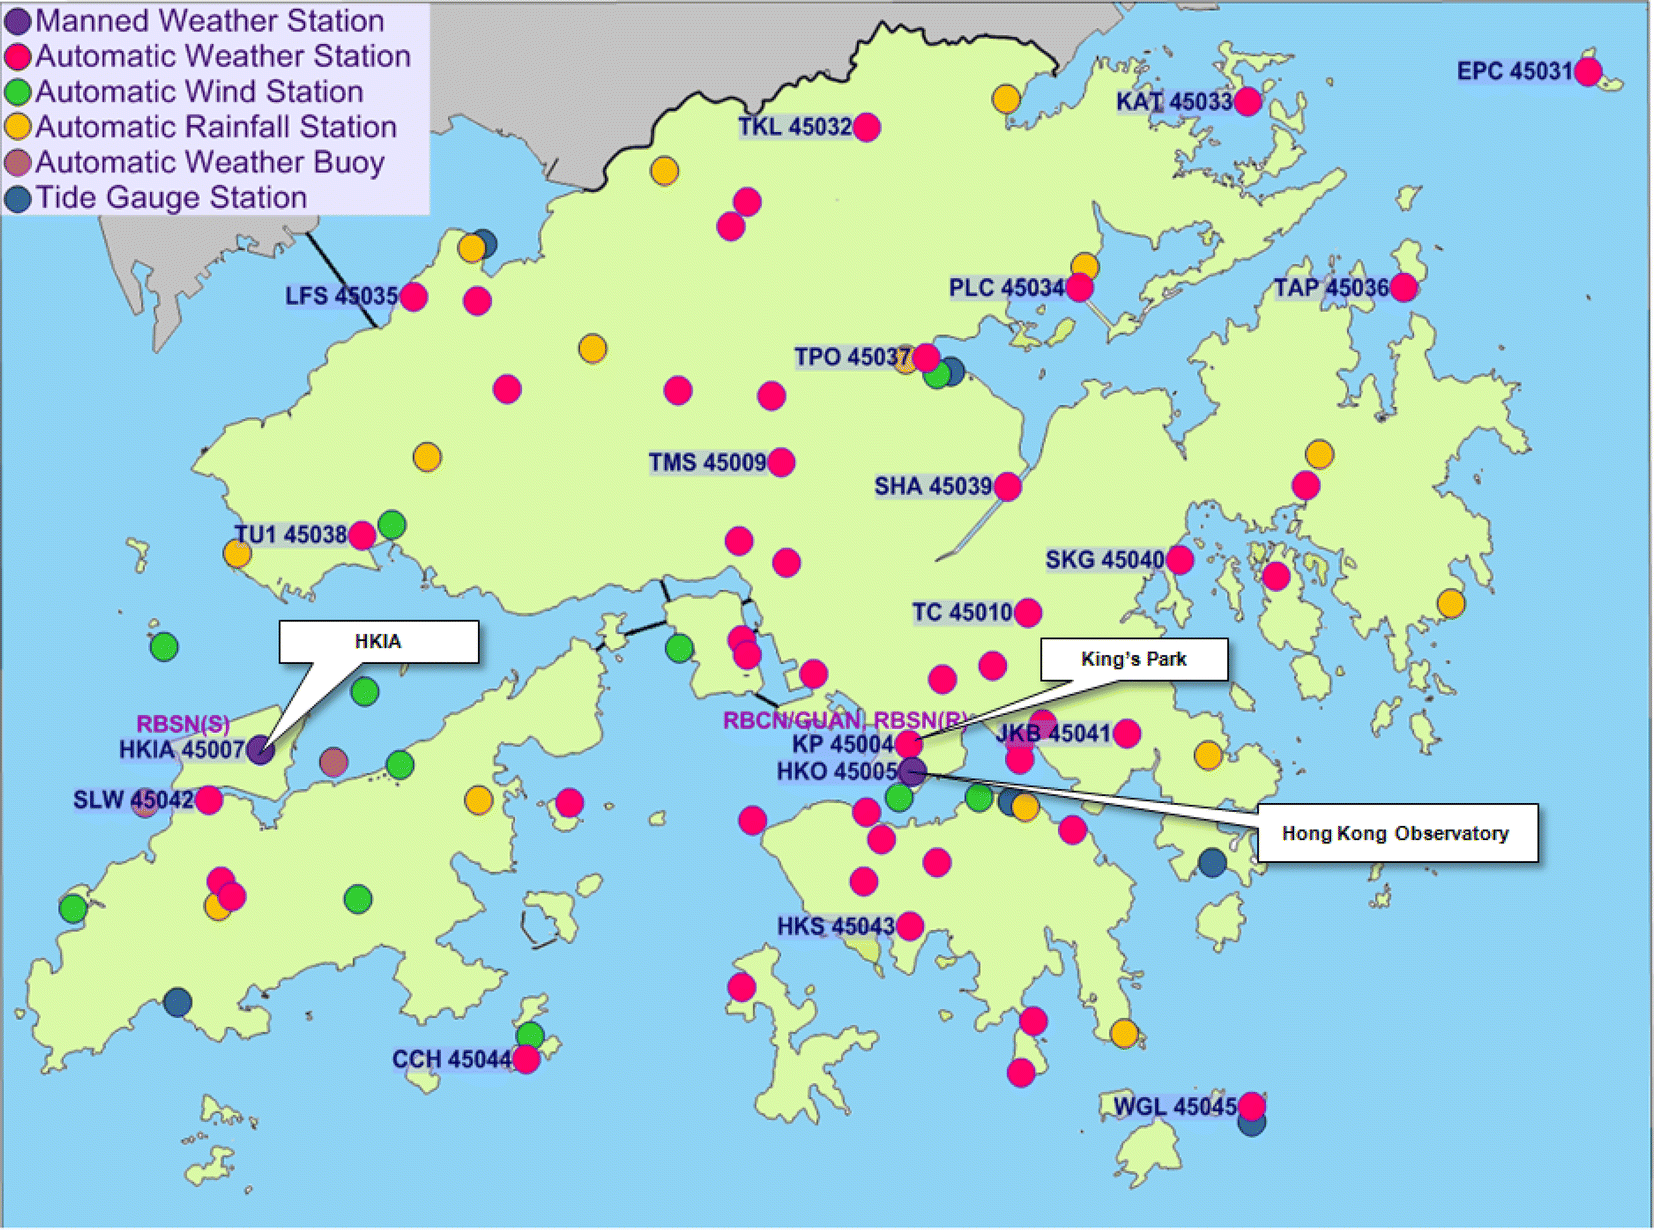 Hong Kong Weather Map.Urban Focused Weather And Climate Services In Hong Kong Geoscience